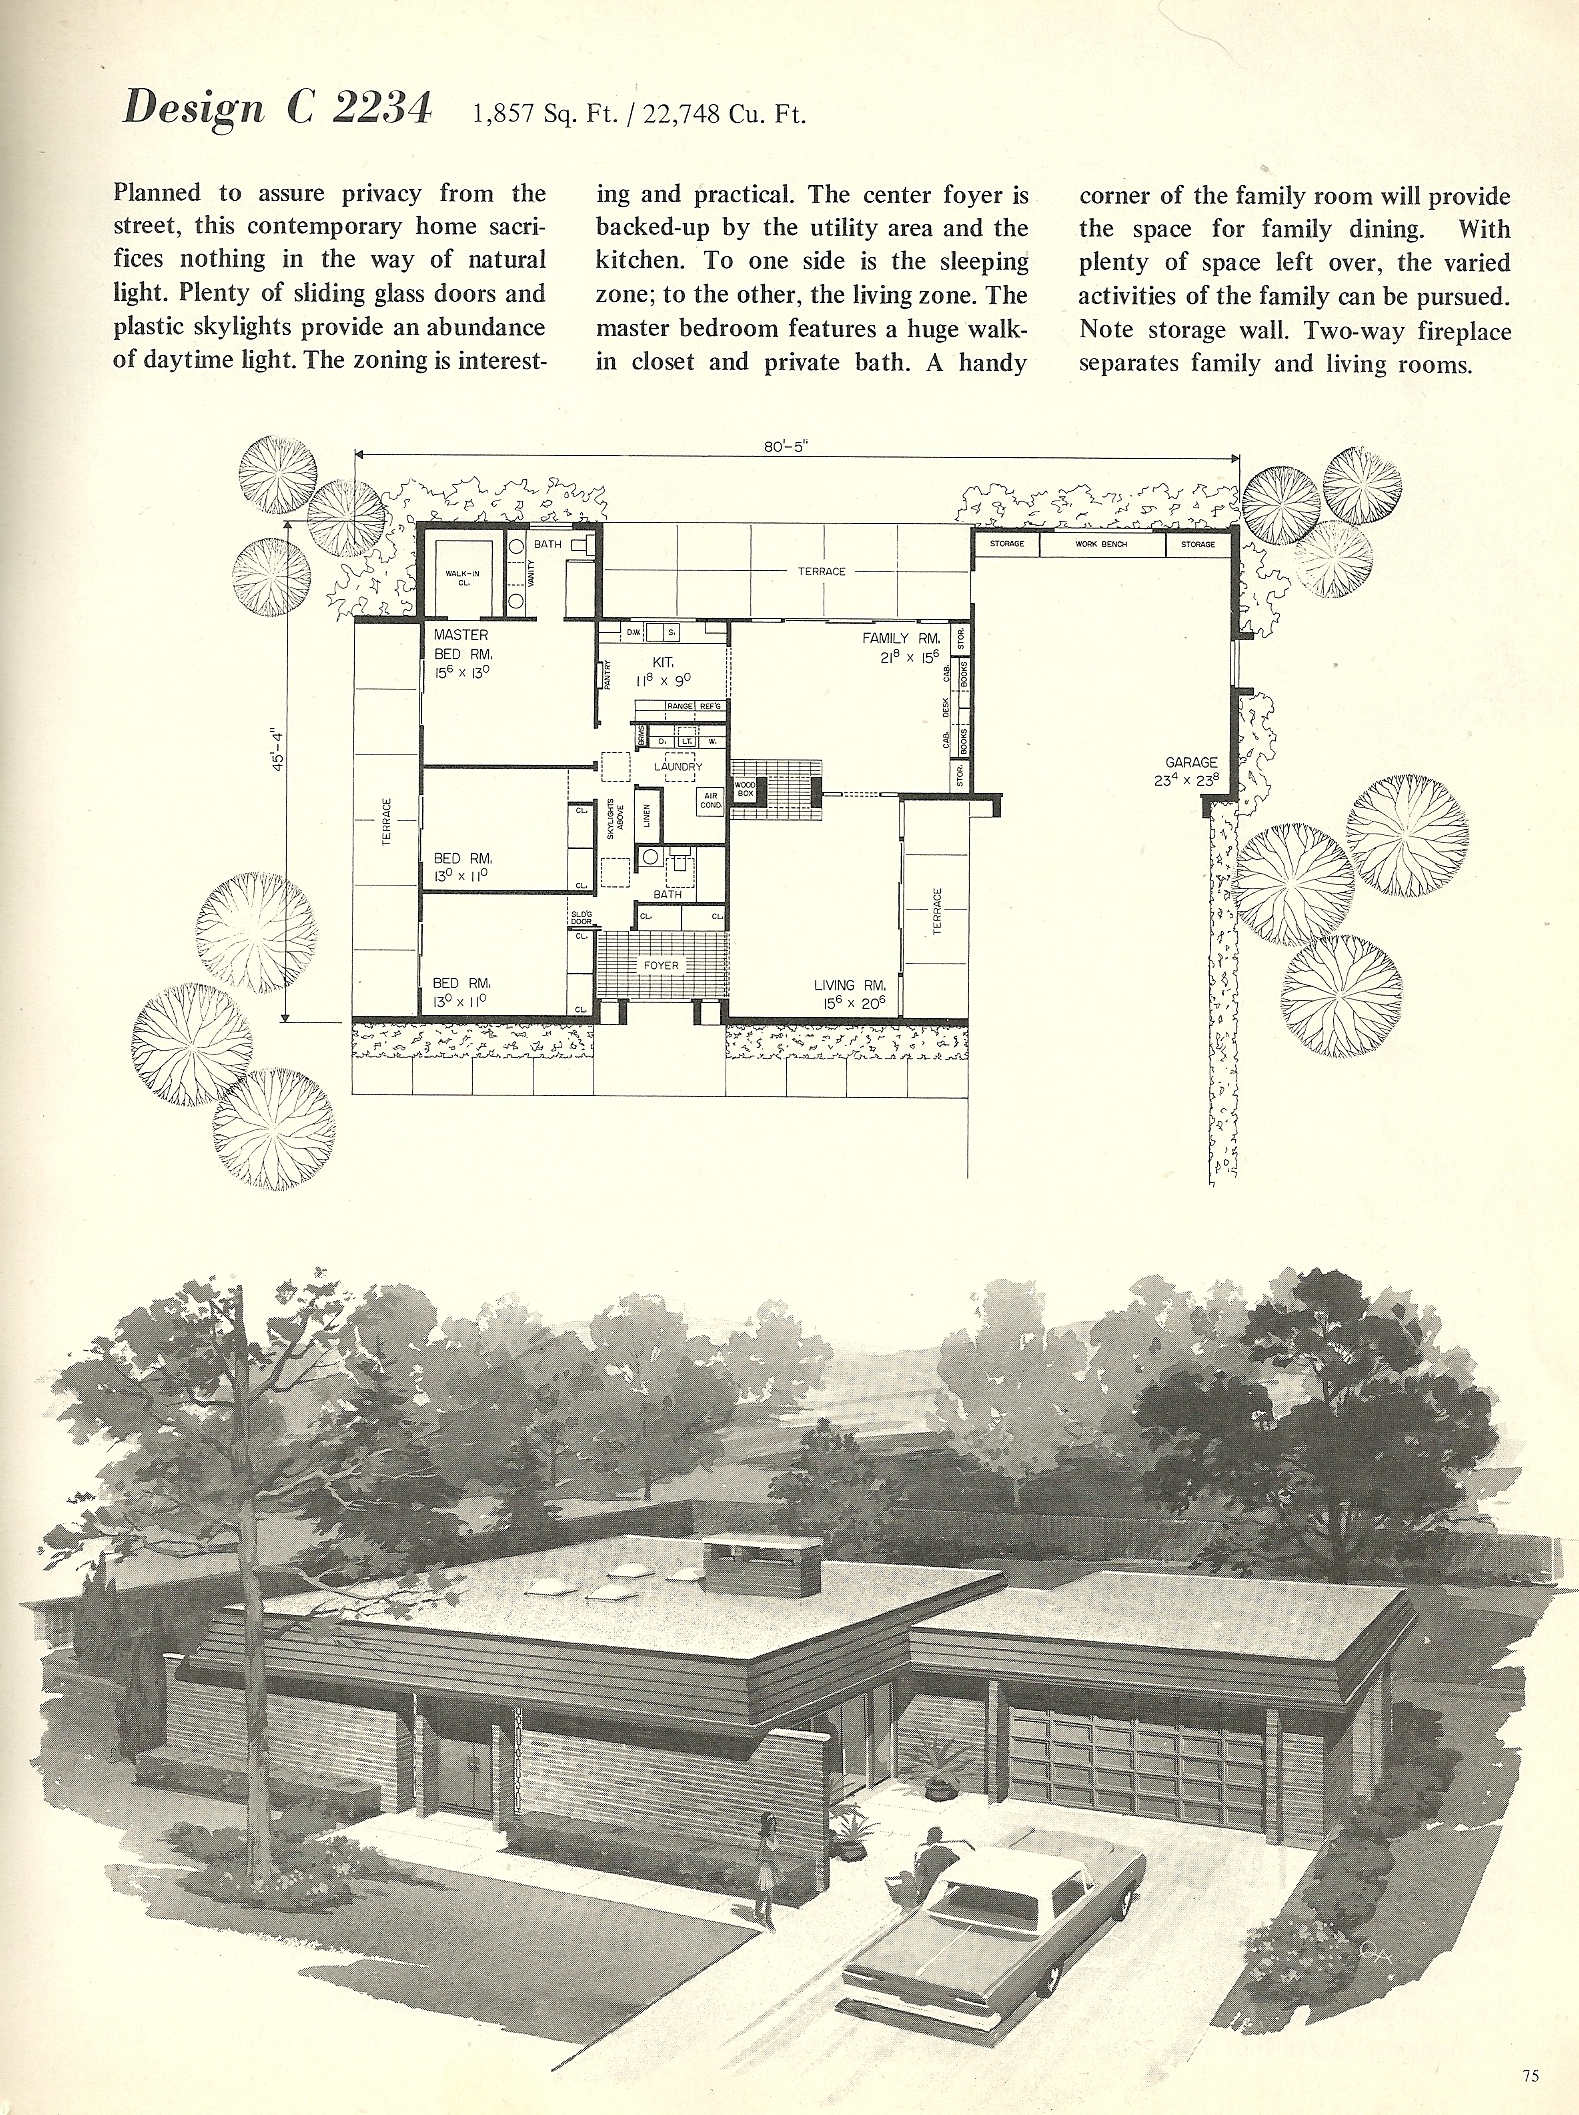 Vintage house plans 2234 antique alter ego for Mid century modern plans